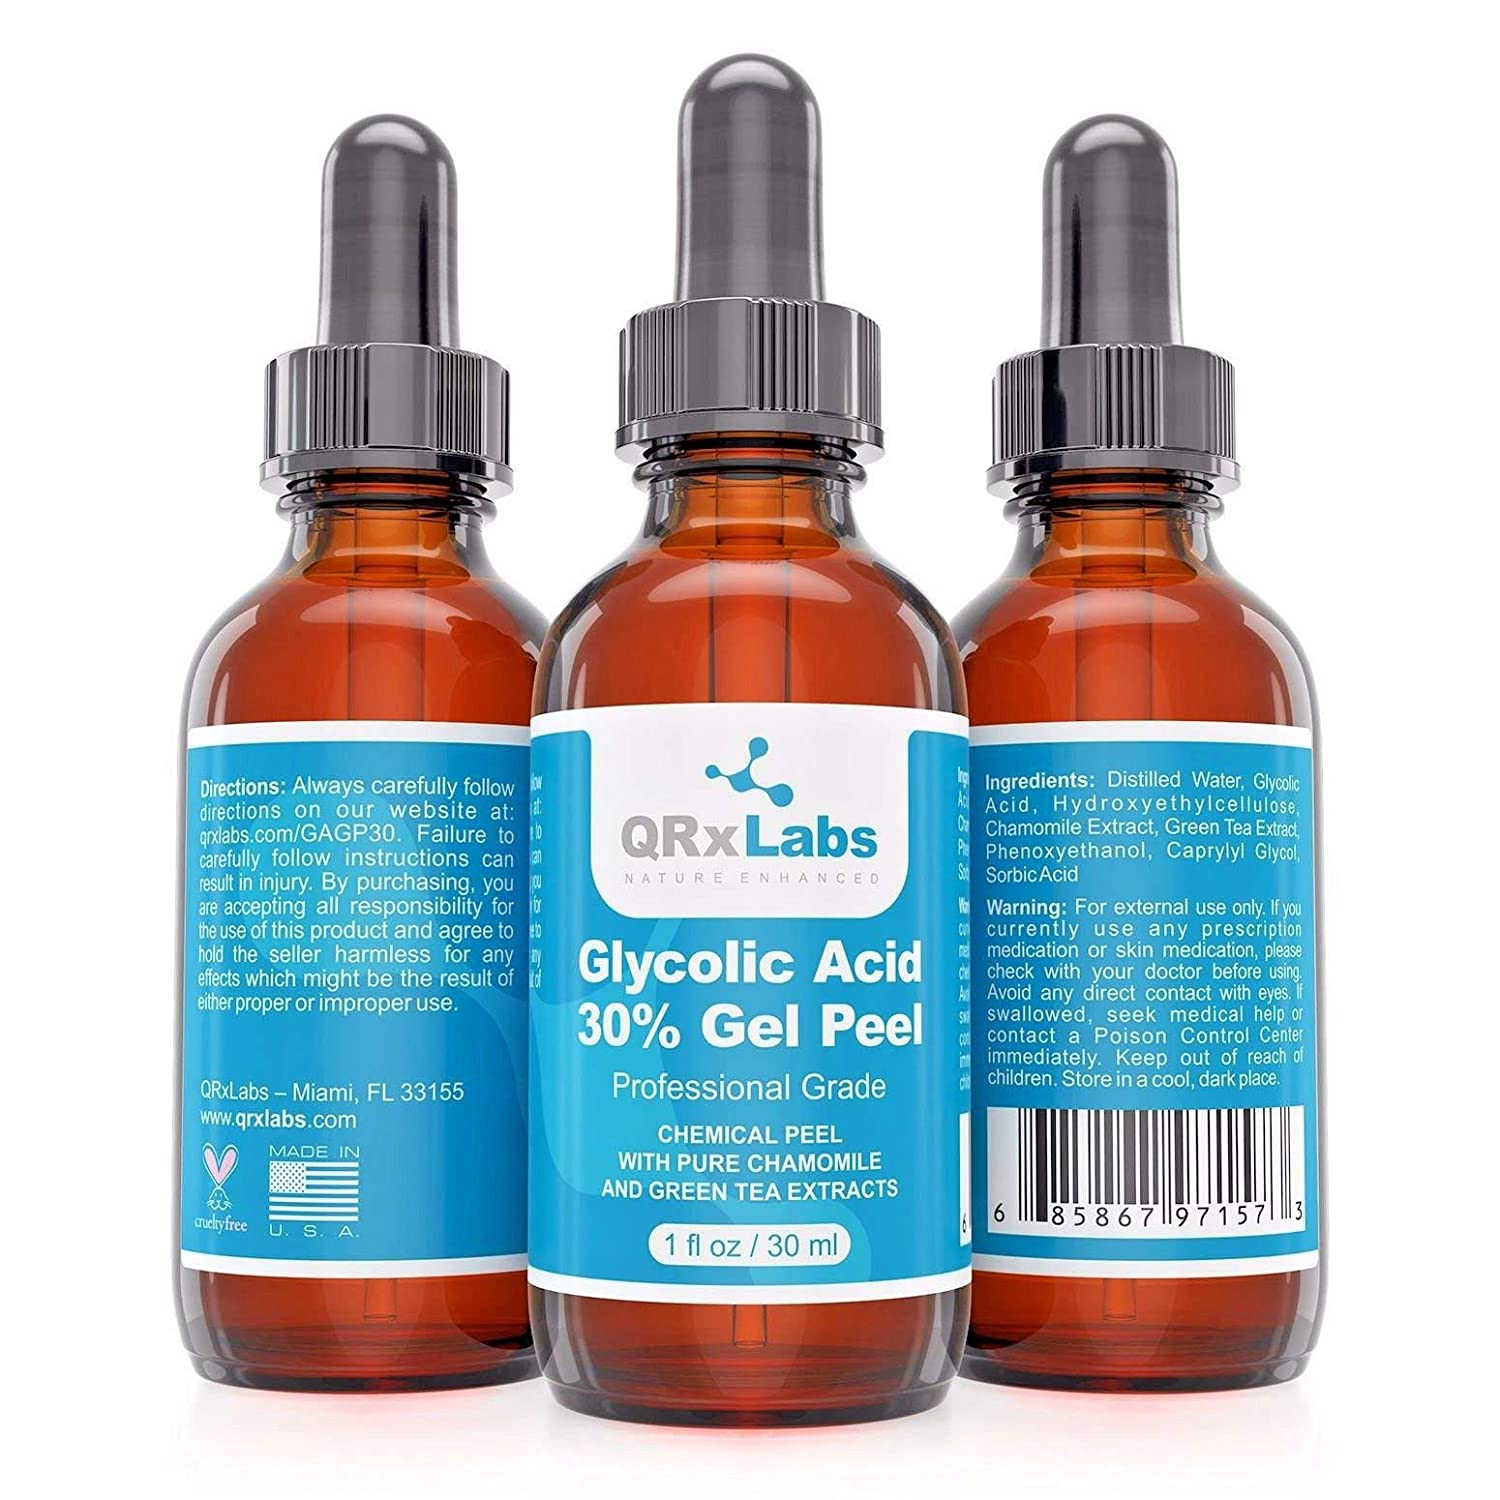 c553c24454570 Buy Glycolic Acid 30% Gel Peel with Chamomile and Green Tea Extracts -  Professional Grade Chemical Face Peel for Acne Scars Online at Low Prices  in India ...